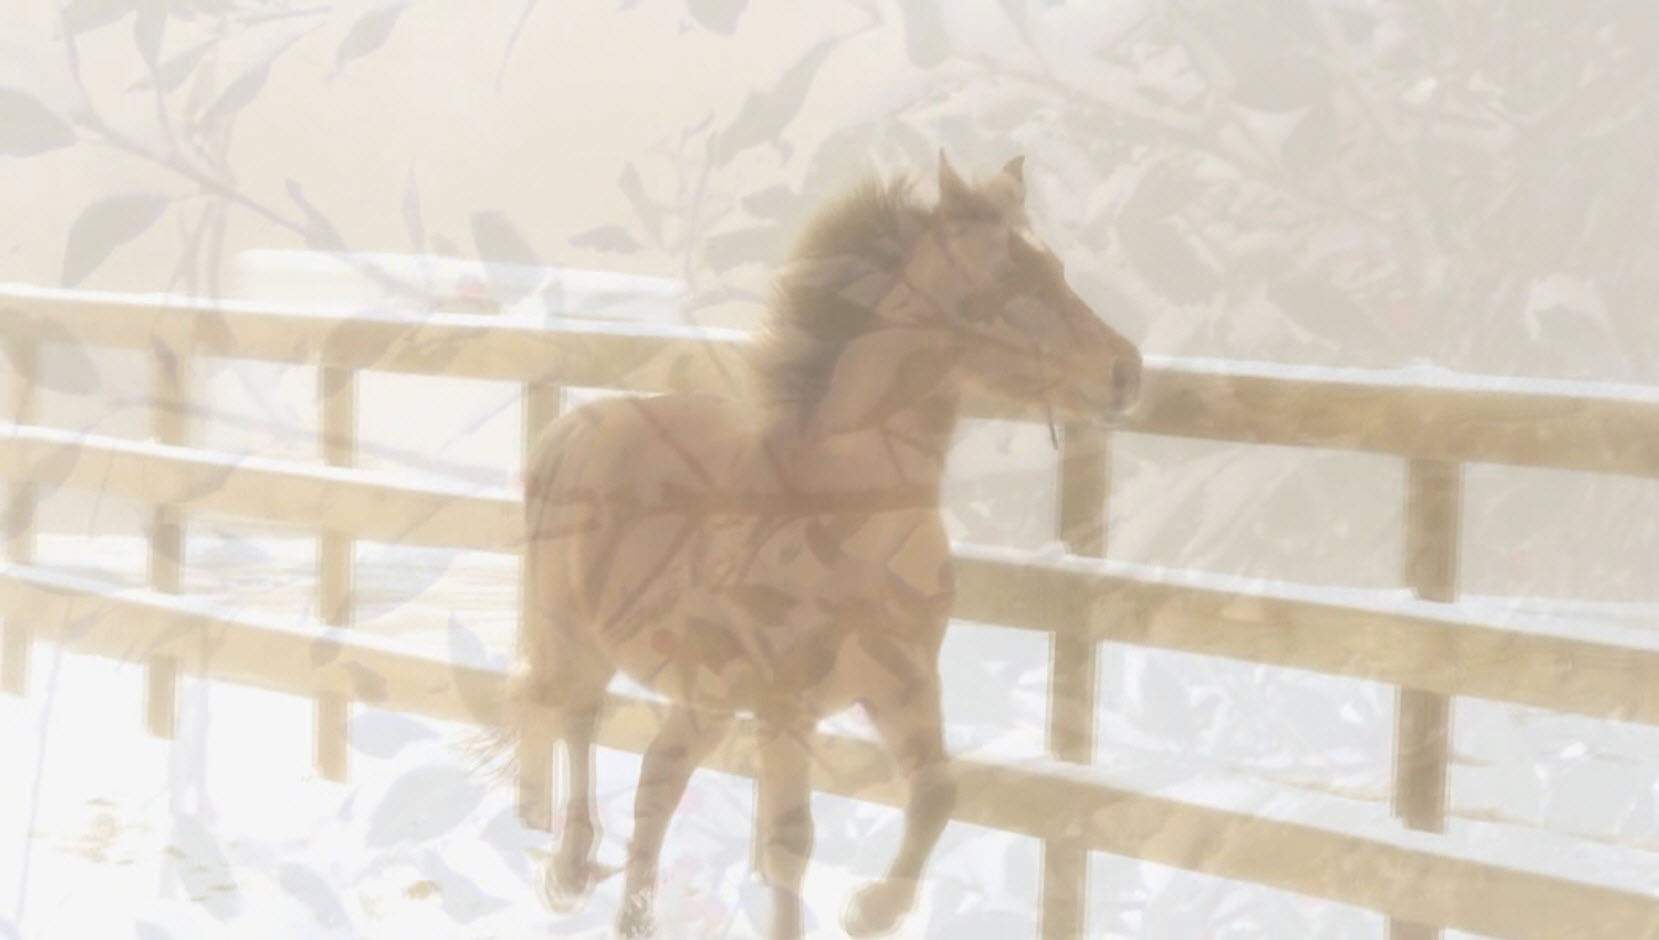 video screenshot - pony playing in snowy arena